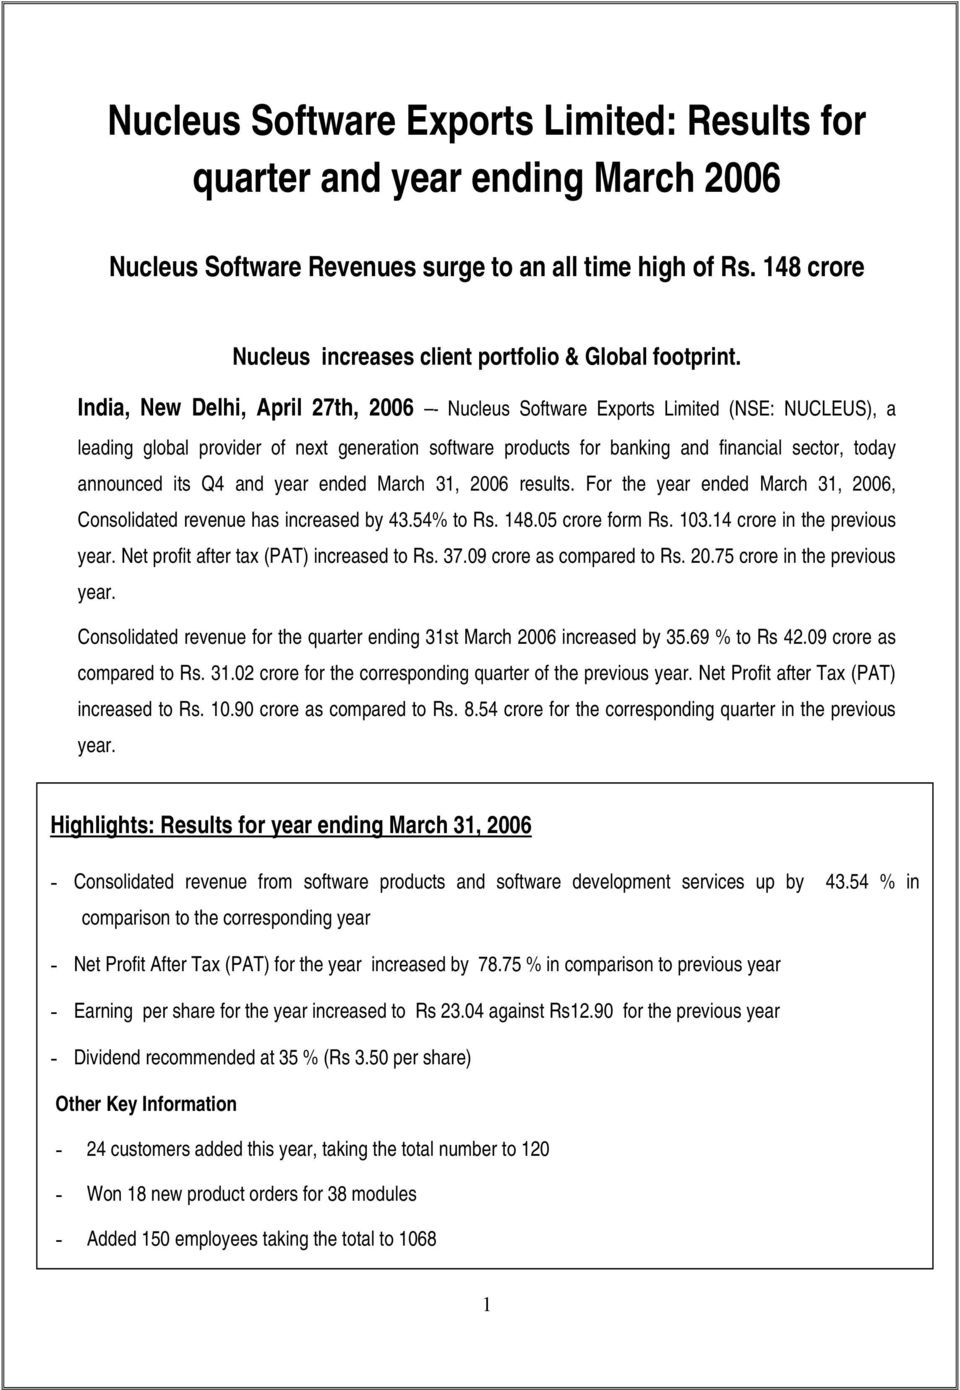 India, New Delhi, April 27th, 2006 - Nucleus Software Exports Limited (NSE: NUCLEUS), a leading global provider of next generation software products for banking and financial sector, today announced